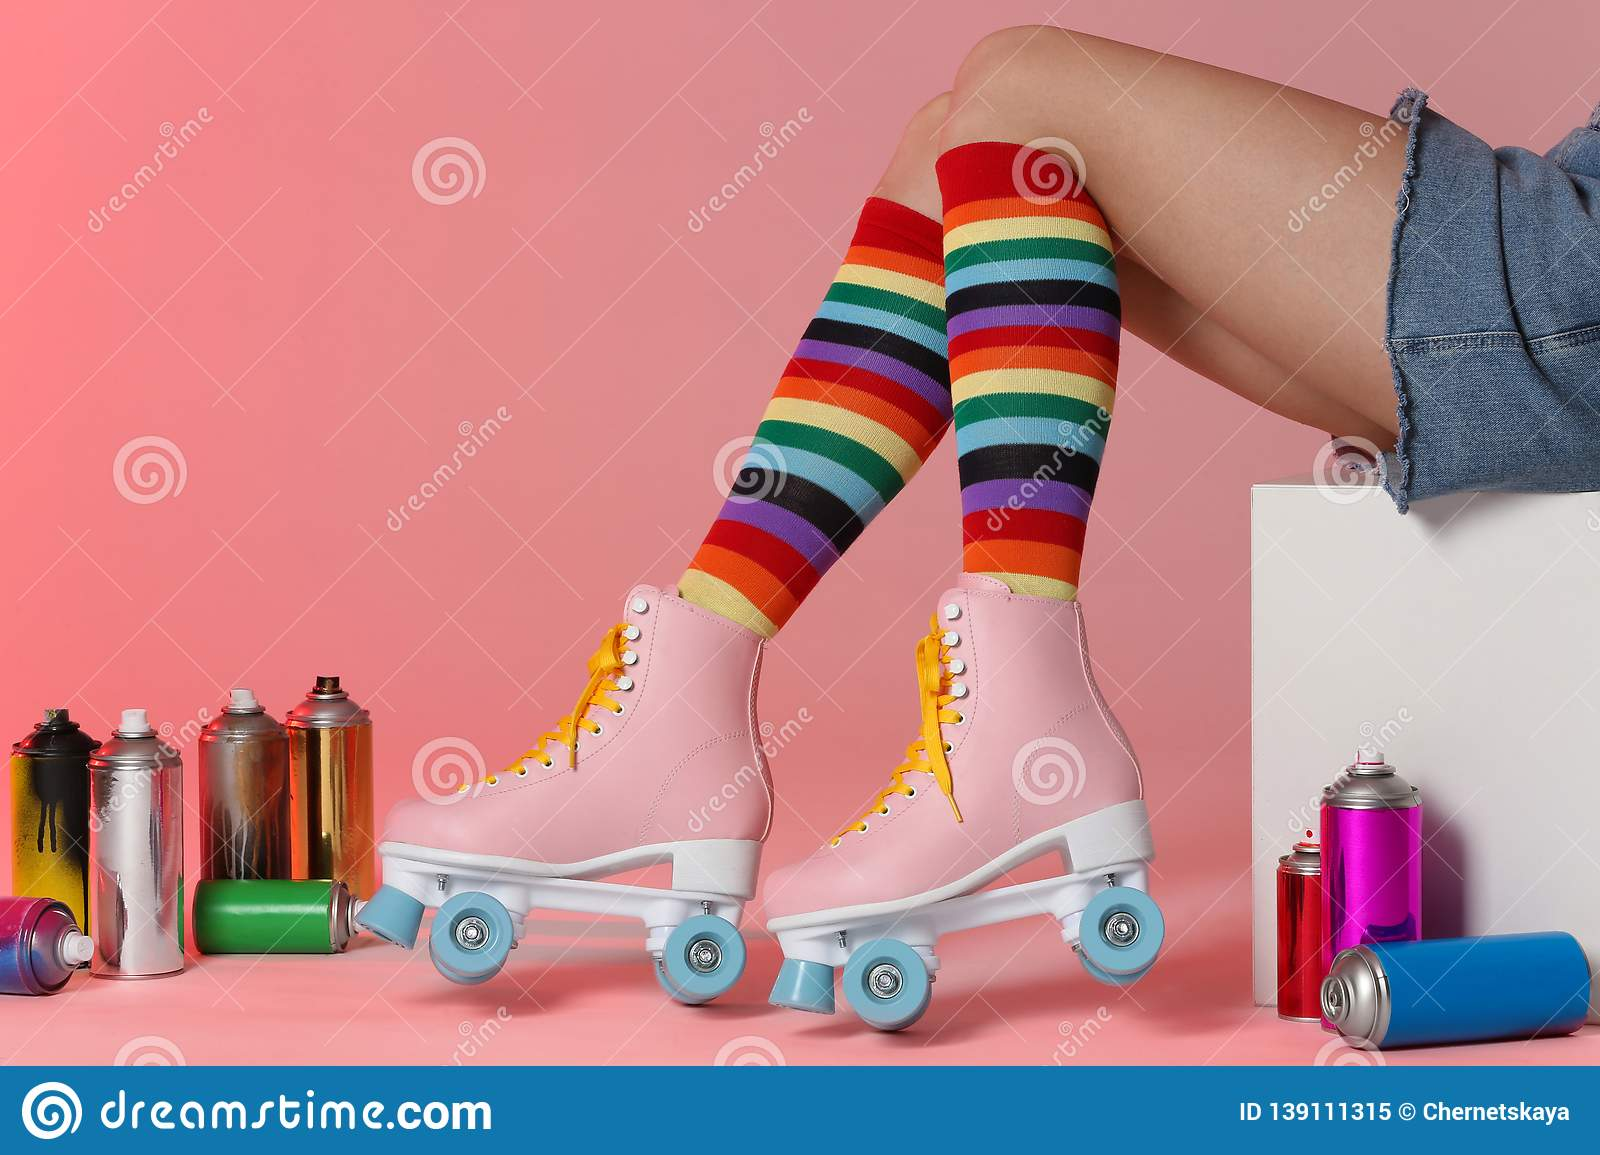 Woman With Vintage Roller Skates And Spray Paint Cans On